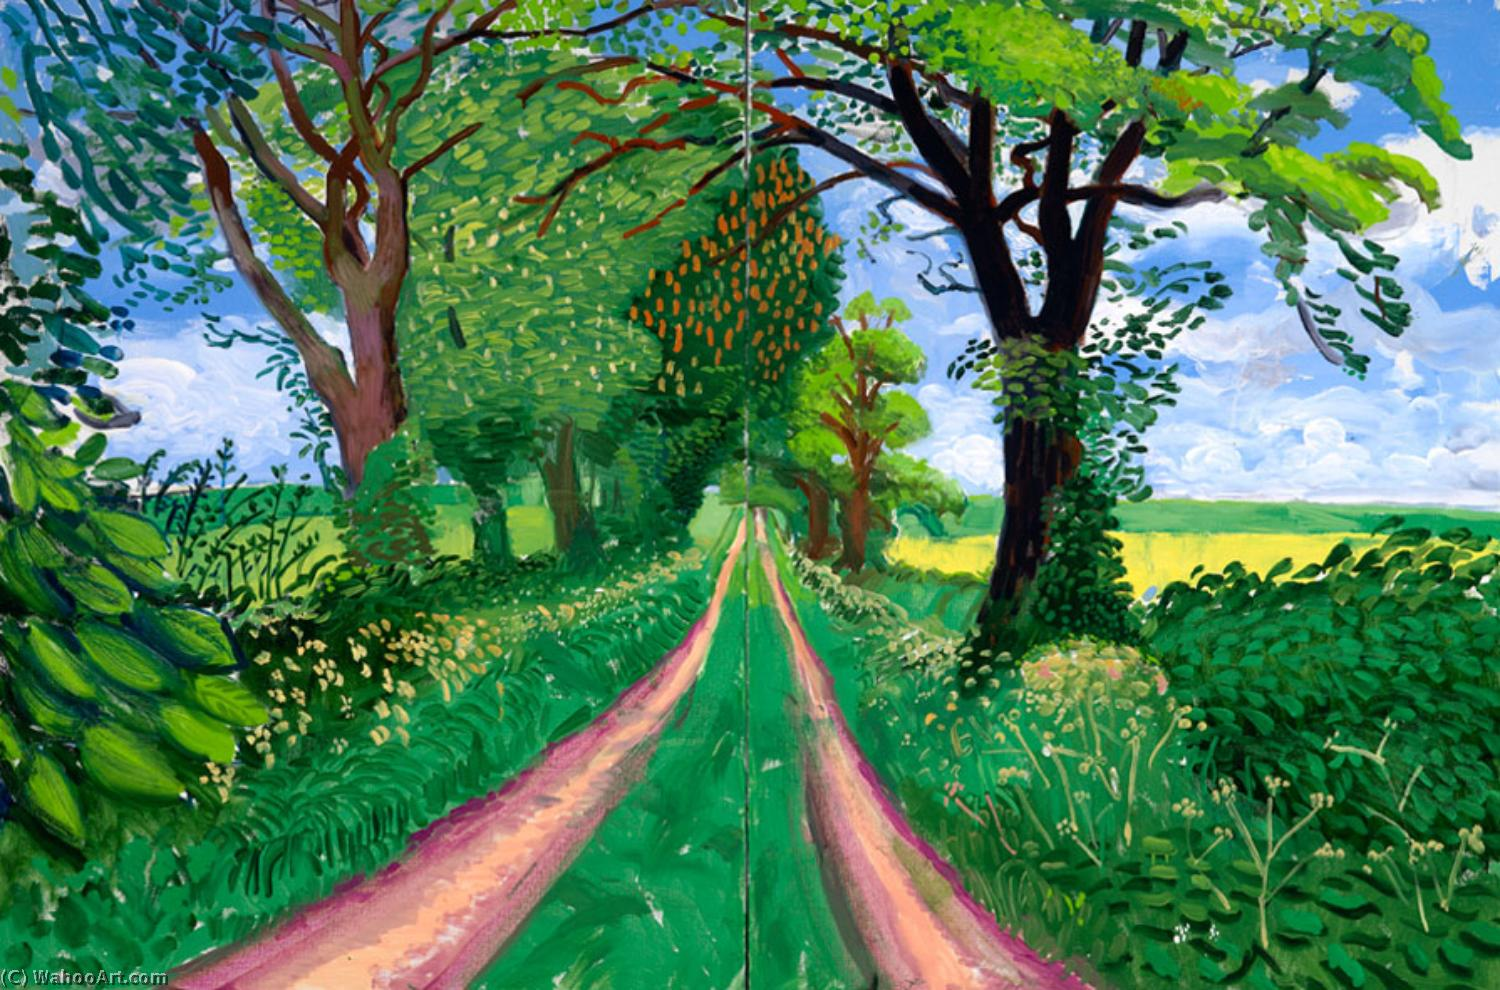 | Tunnel de fin du printemps de David Hockney | BuyPopArt.com